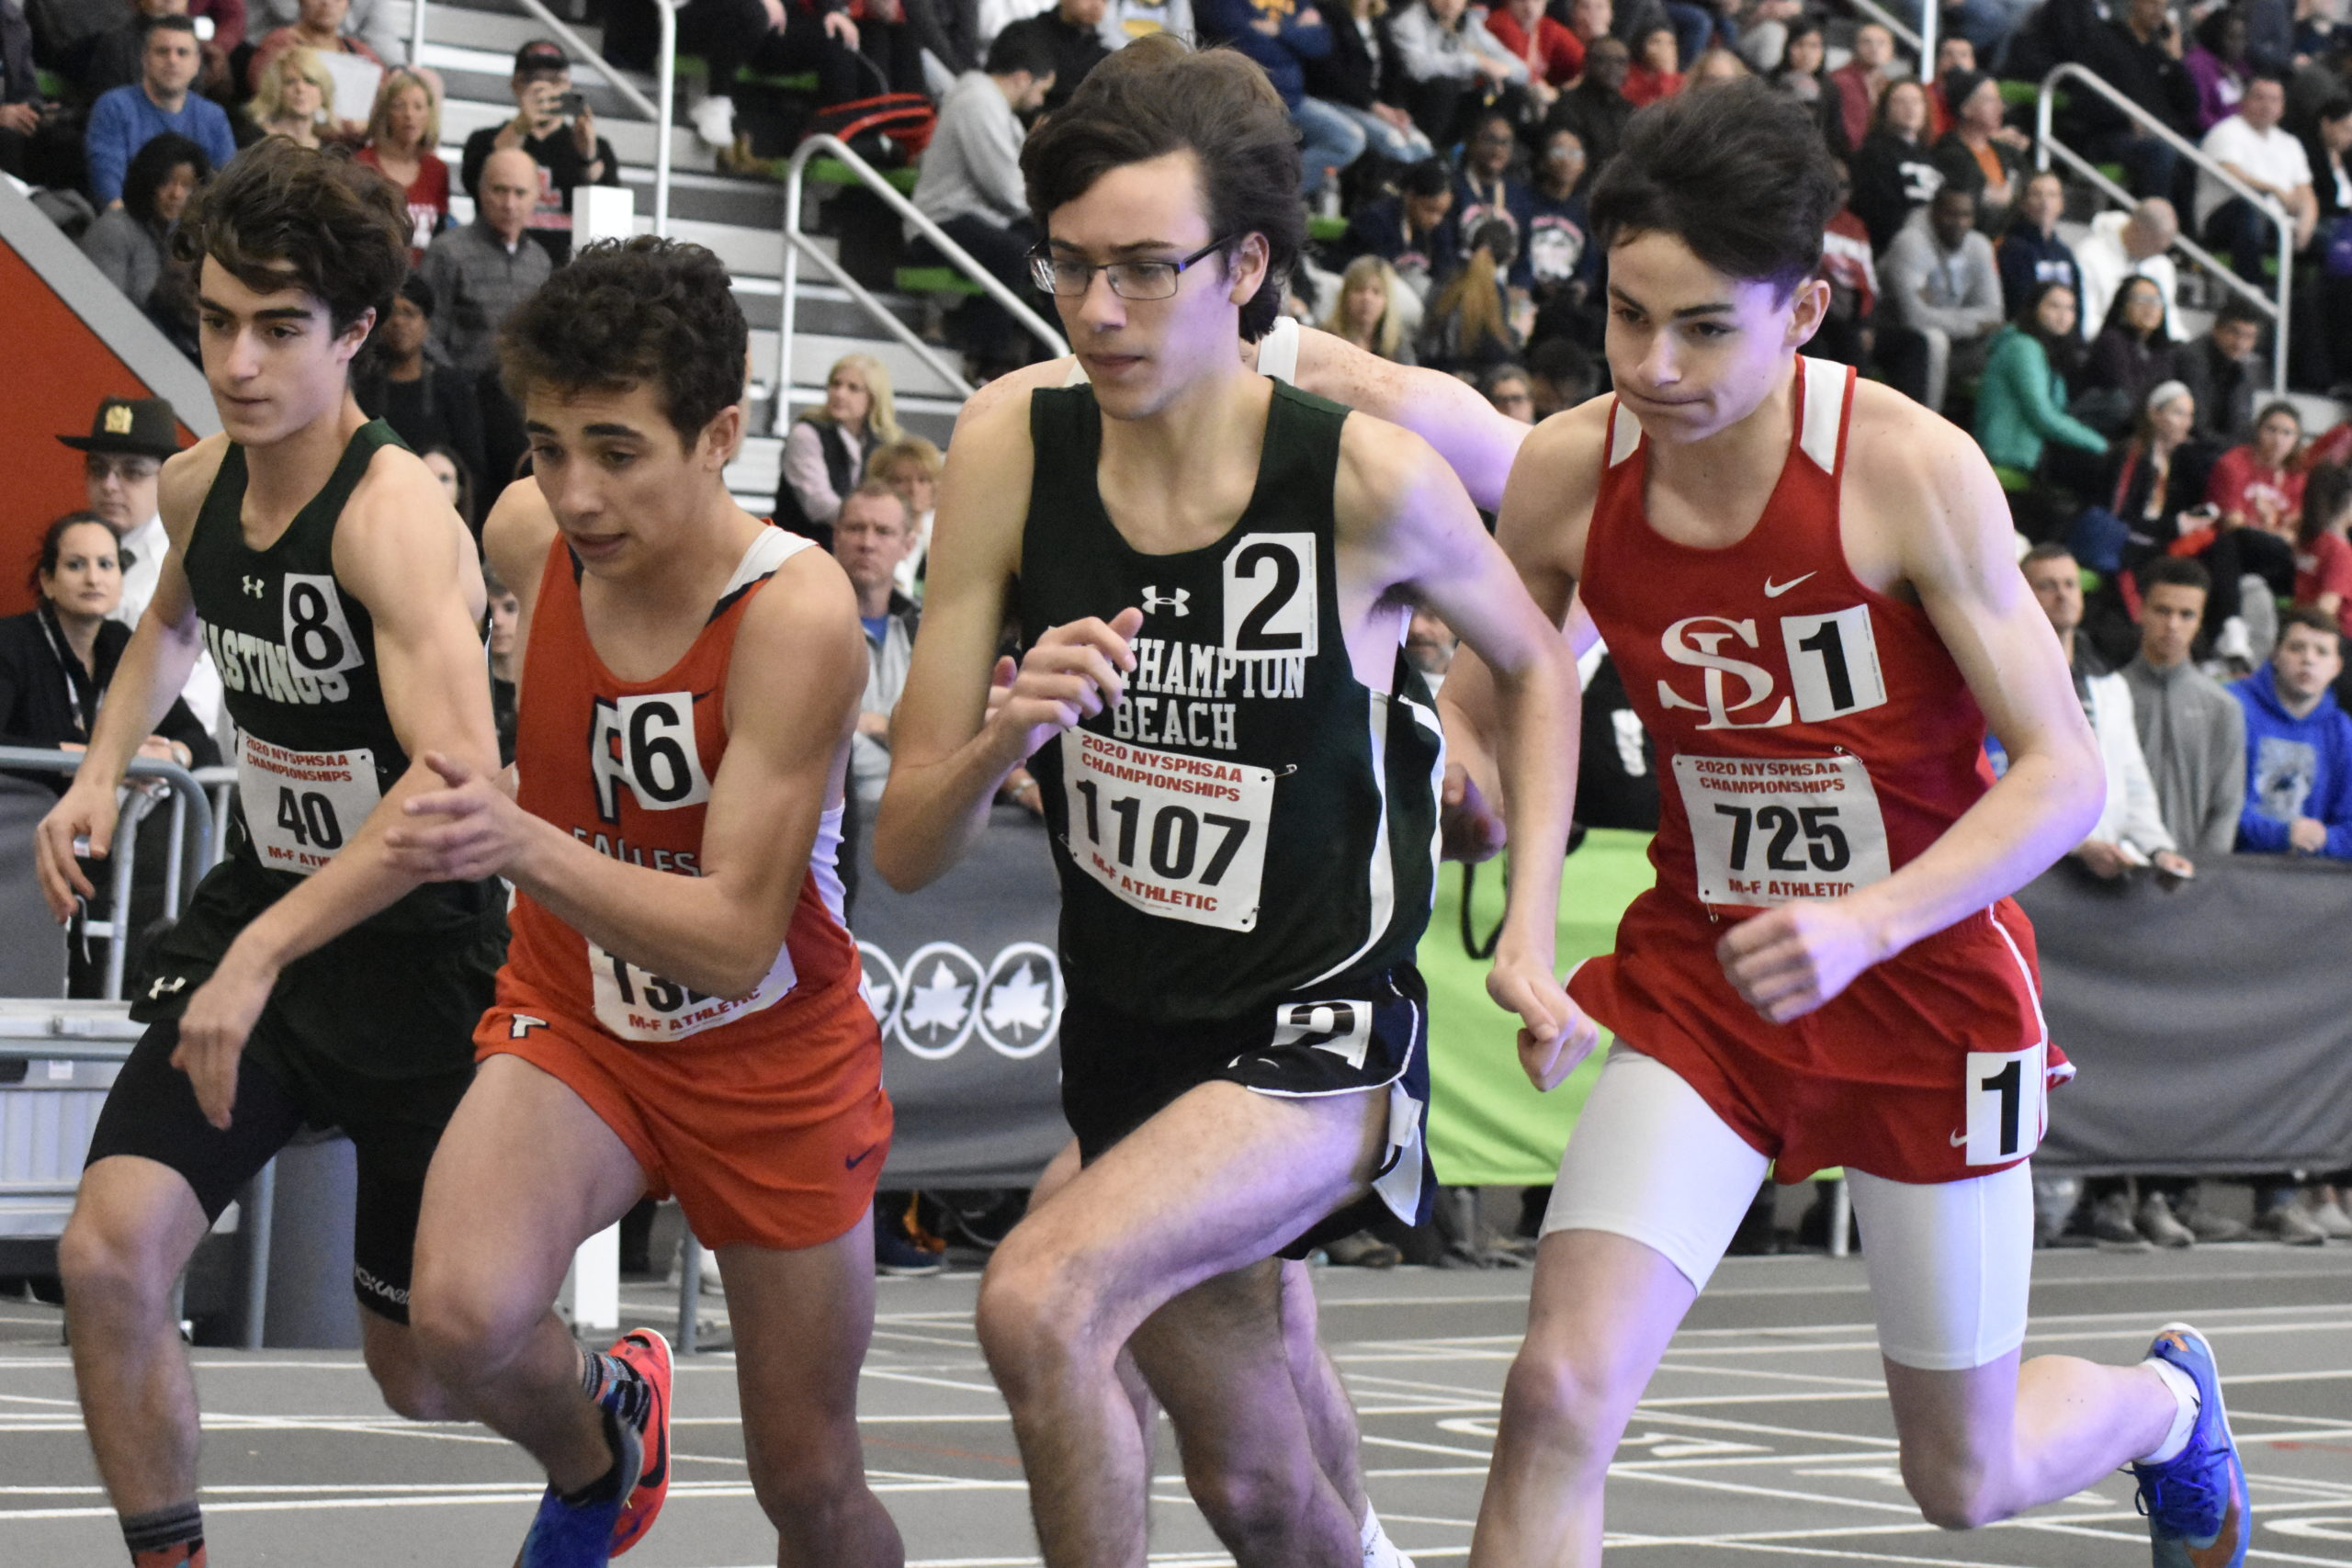 Westhampton Beach sophomore Gavin Ehlers starts the 3,200-meter race at the New York State Indoor Track and Field Championships on Saturday.